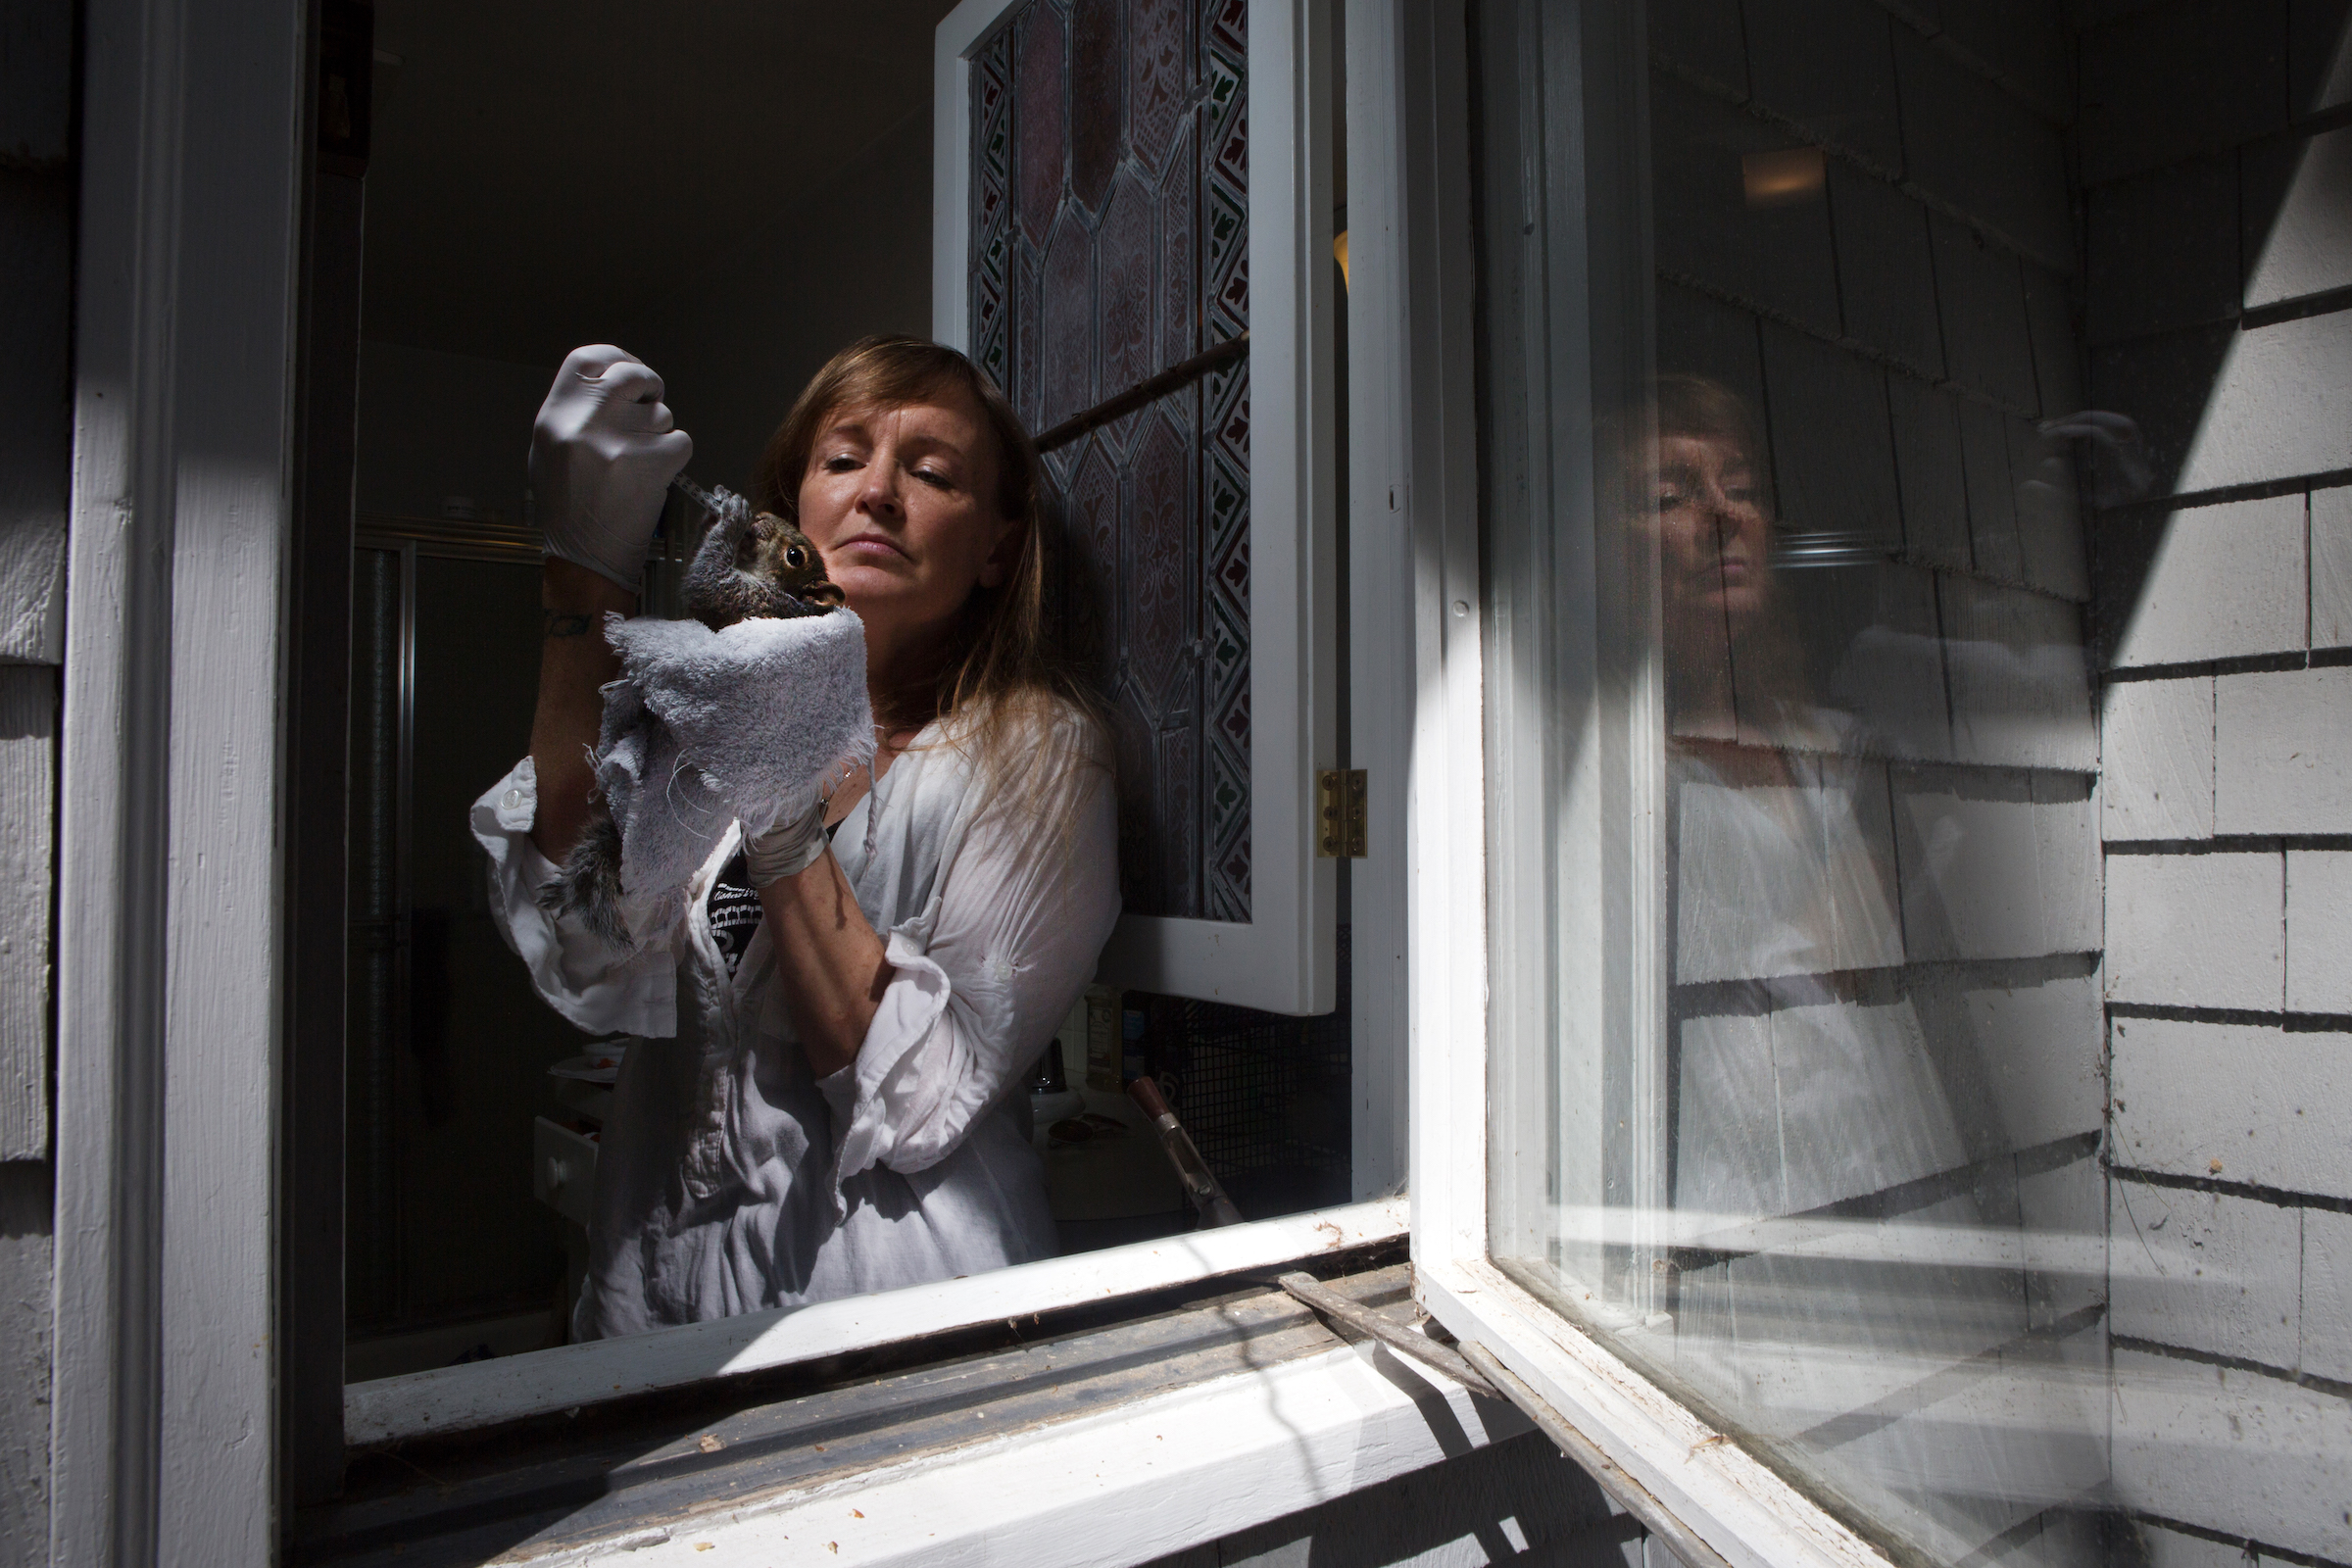 Susanna Tuffy, a licensed wildlife rehabilitator from Duxbury, Massachusetts, feeds a baby squirrel from inside her bathroom window. Tuffy cares for about 60 animals a year in her home.